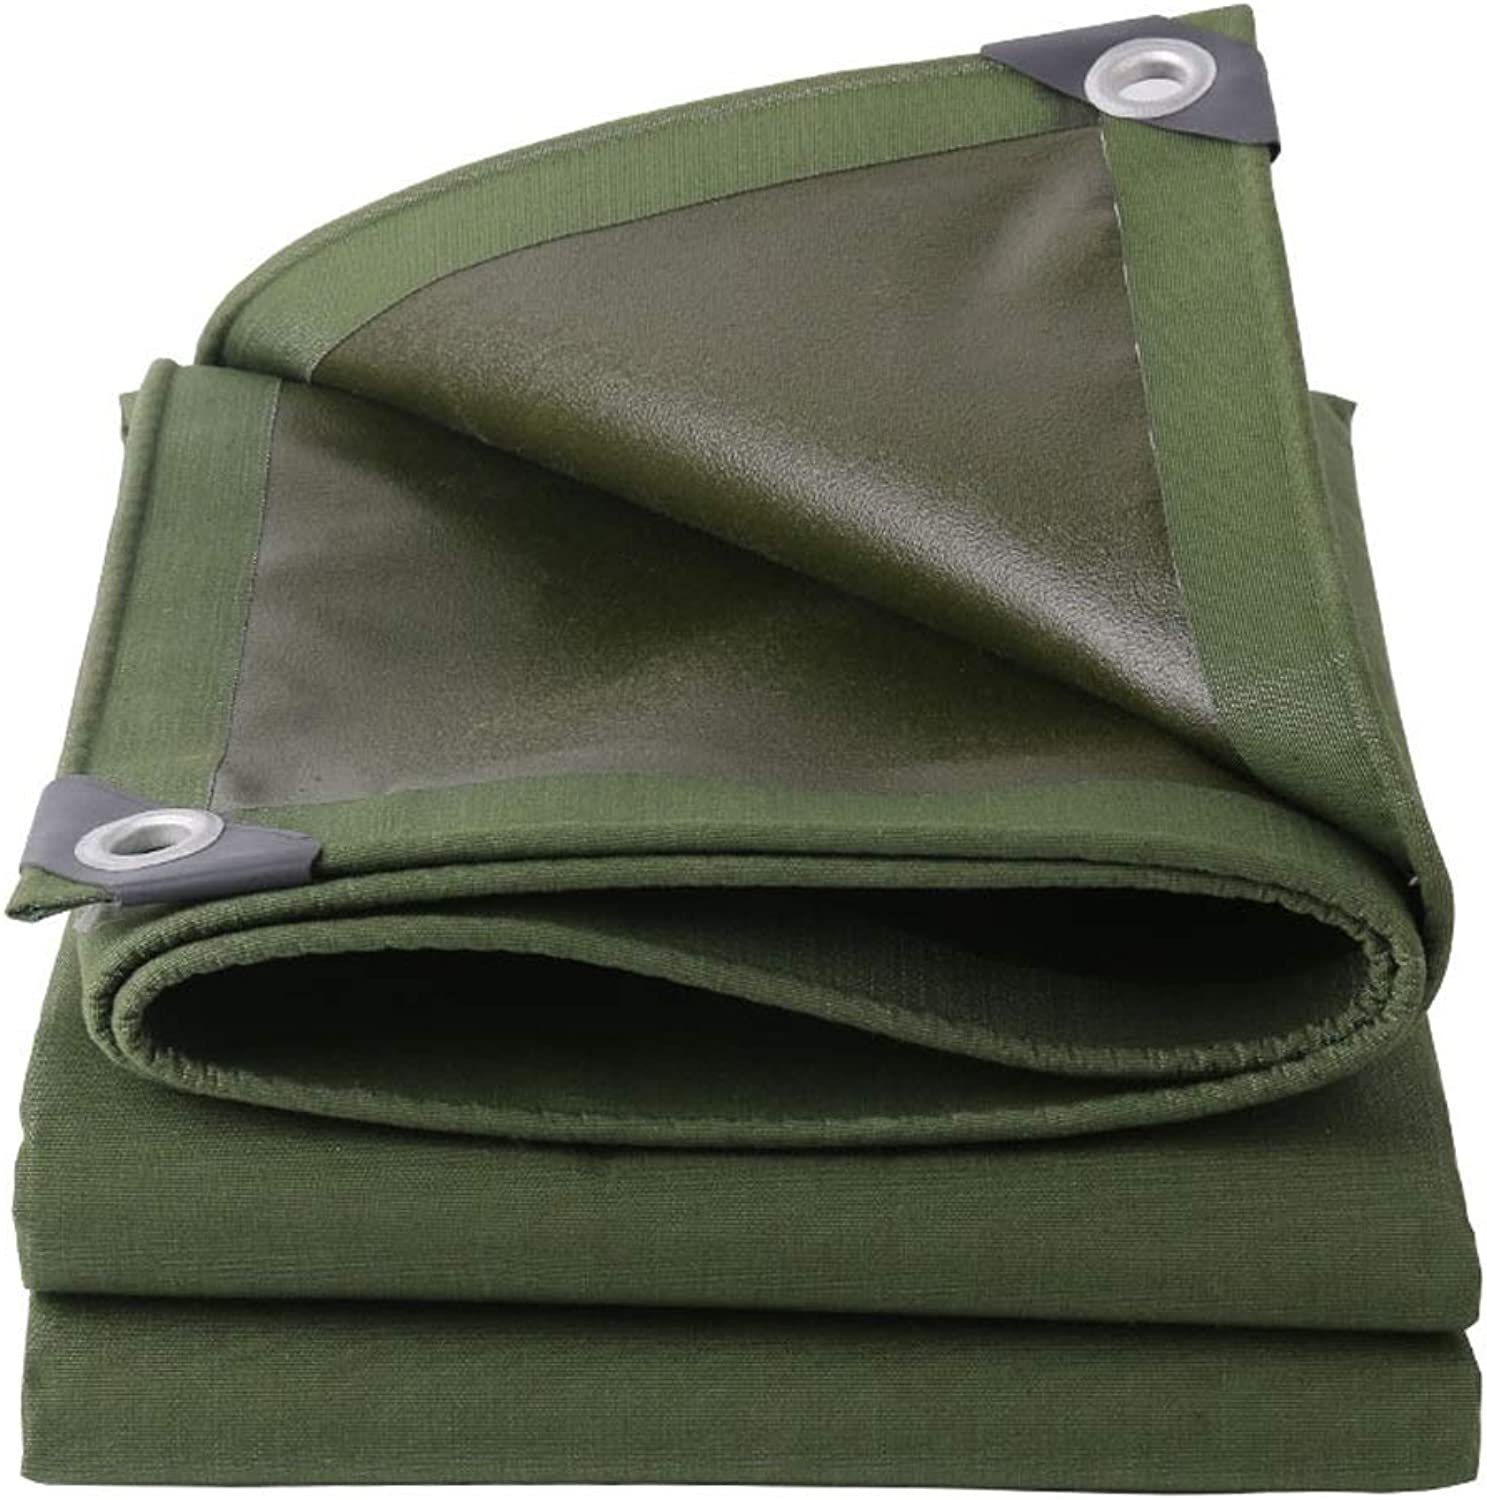 LSLMCS Tarpaulin tarp Green Waterproof Tarpaulin Ground Sheet Covers for Camping Fishing, Gardening and Pets 100% and UV Predected 1.5x2m (Size   3X6m)